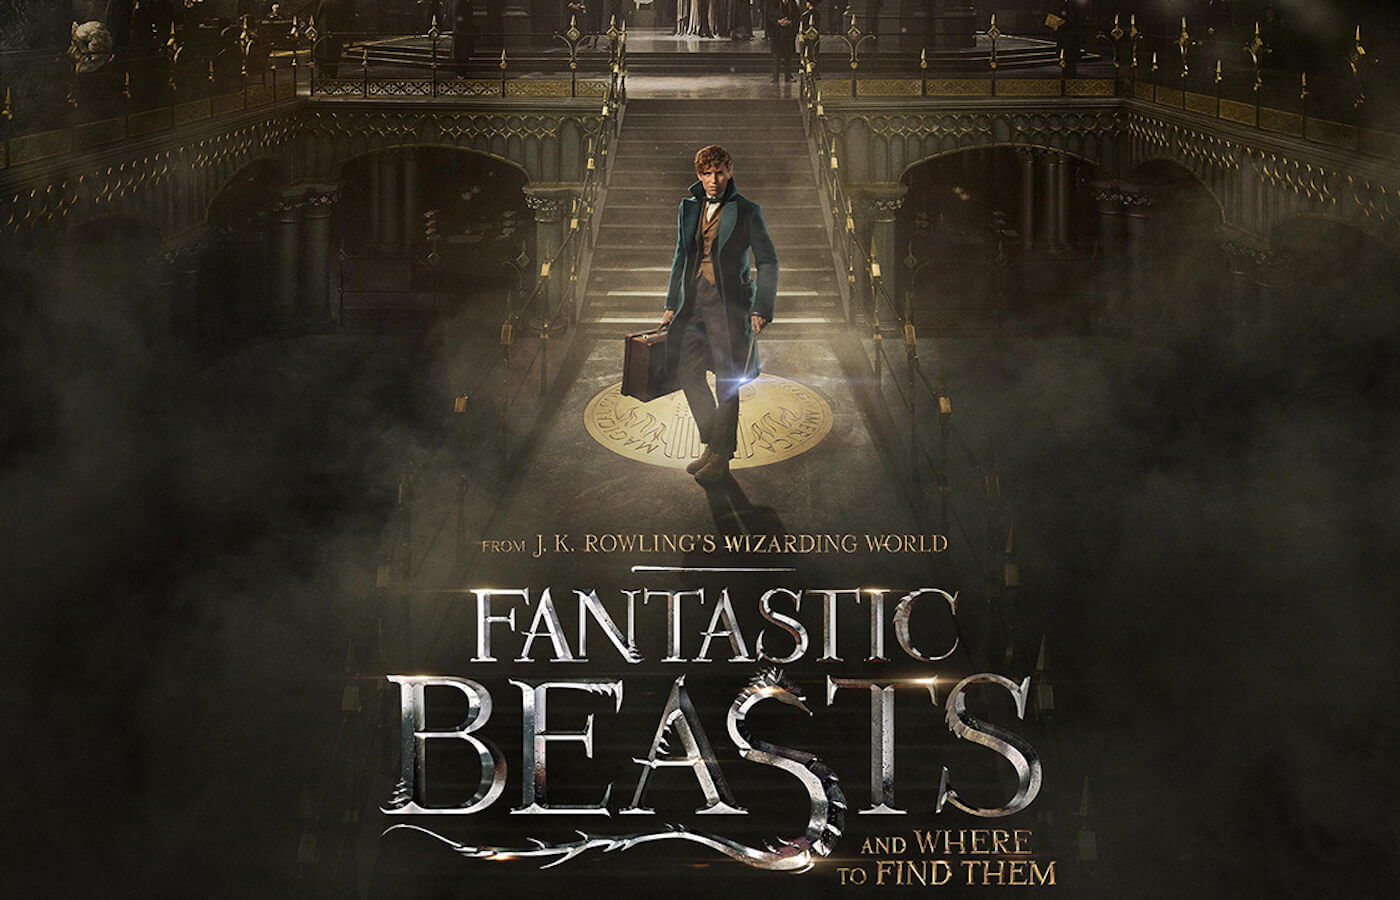 Fantastic beasts and where to find them poster 2